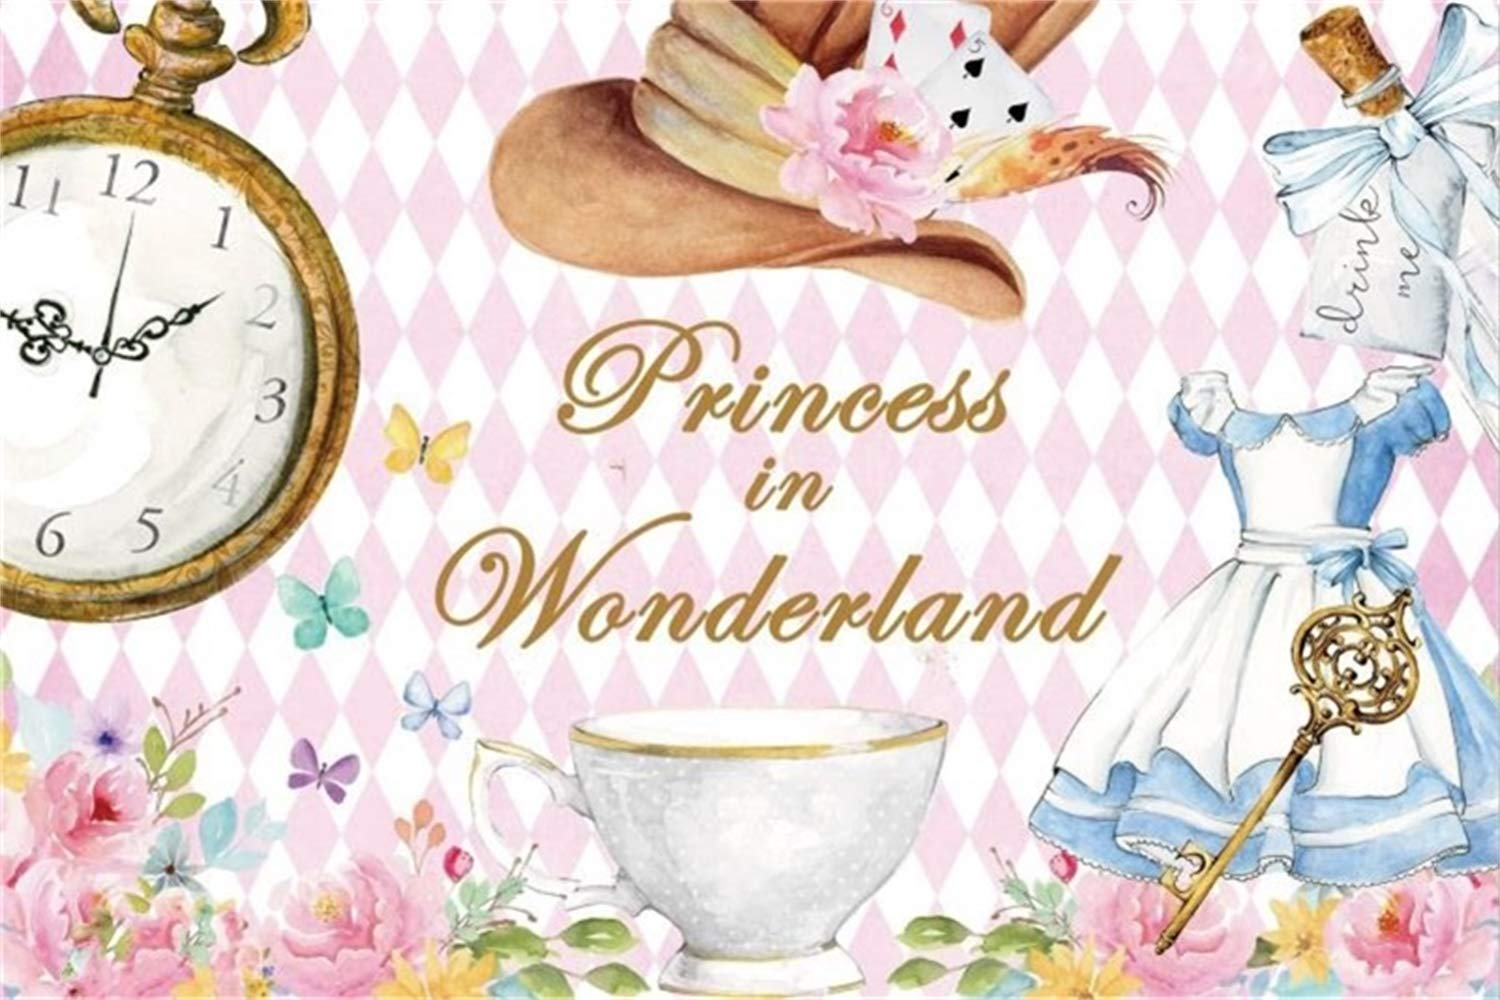 Retro little girl pink hat with flowers clipart cartoon png freeuse stock Laeacco 10x6.5ft Cartoon Princess In Wonderland Vinyl Photography  Background Beautiful Hat Vintage Pocket Watch Dress Cafe Cup Pink Geometric  Pattern ... png freeuse stock